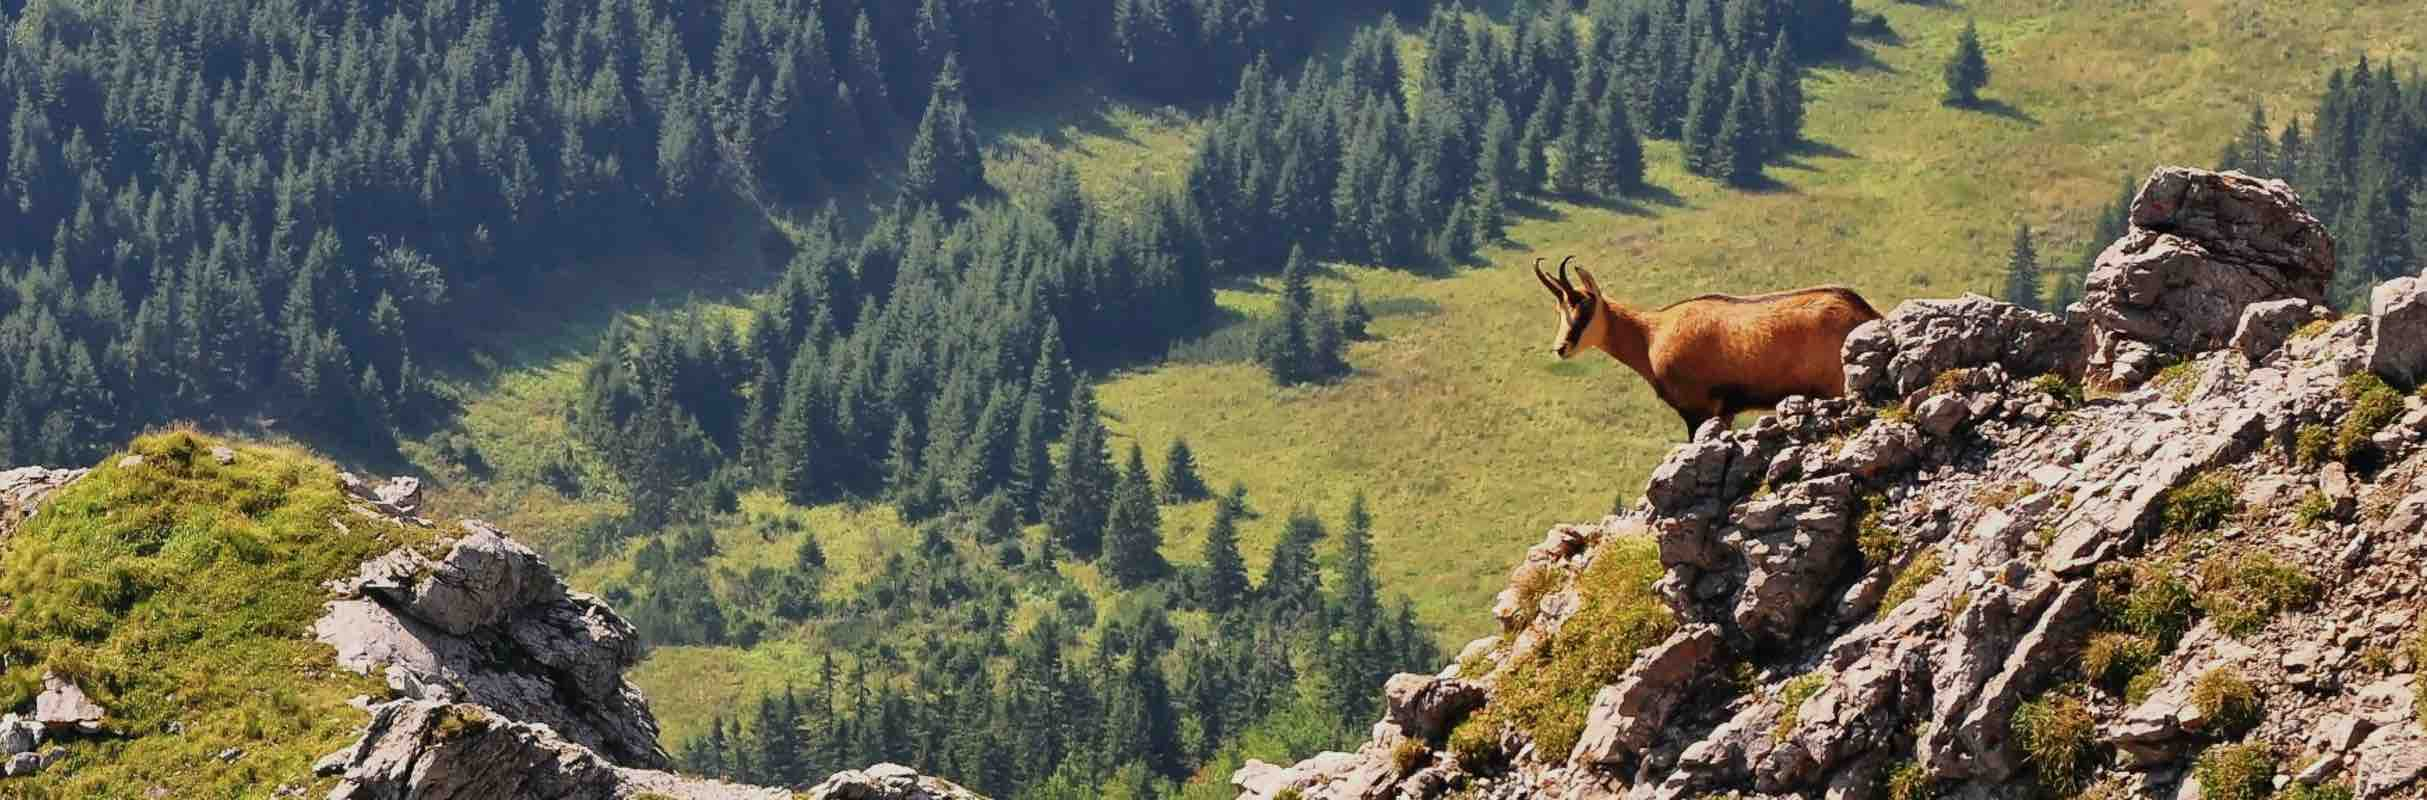 Ethical, sustainable use hunting conservation management mountain hunting for Alpine Chamois in Euro